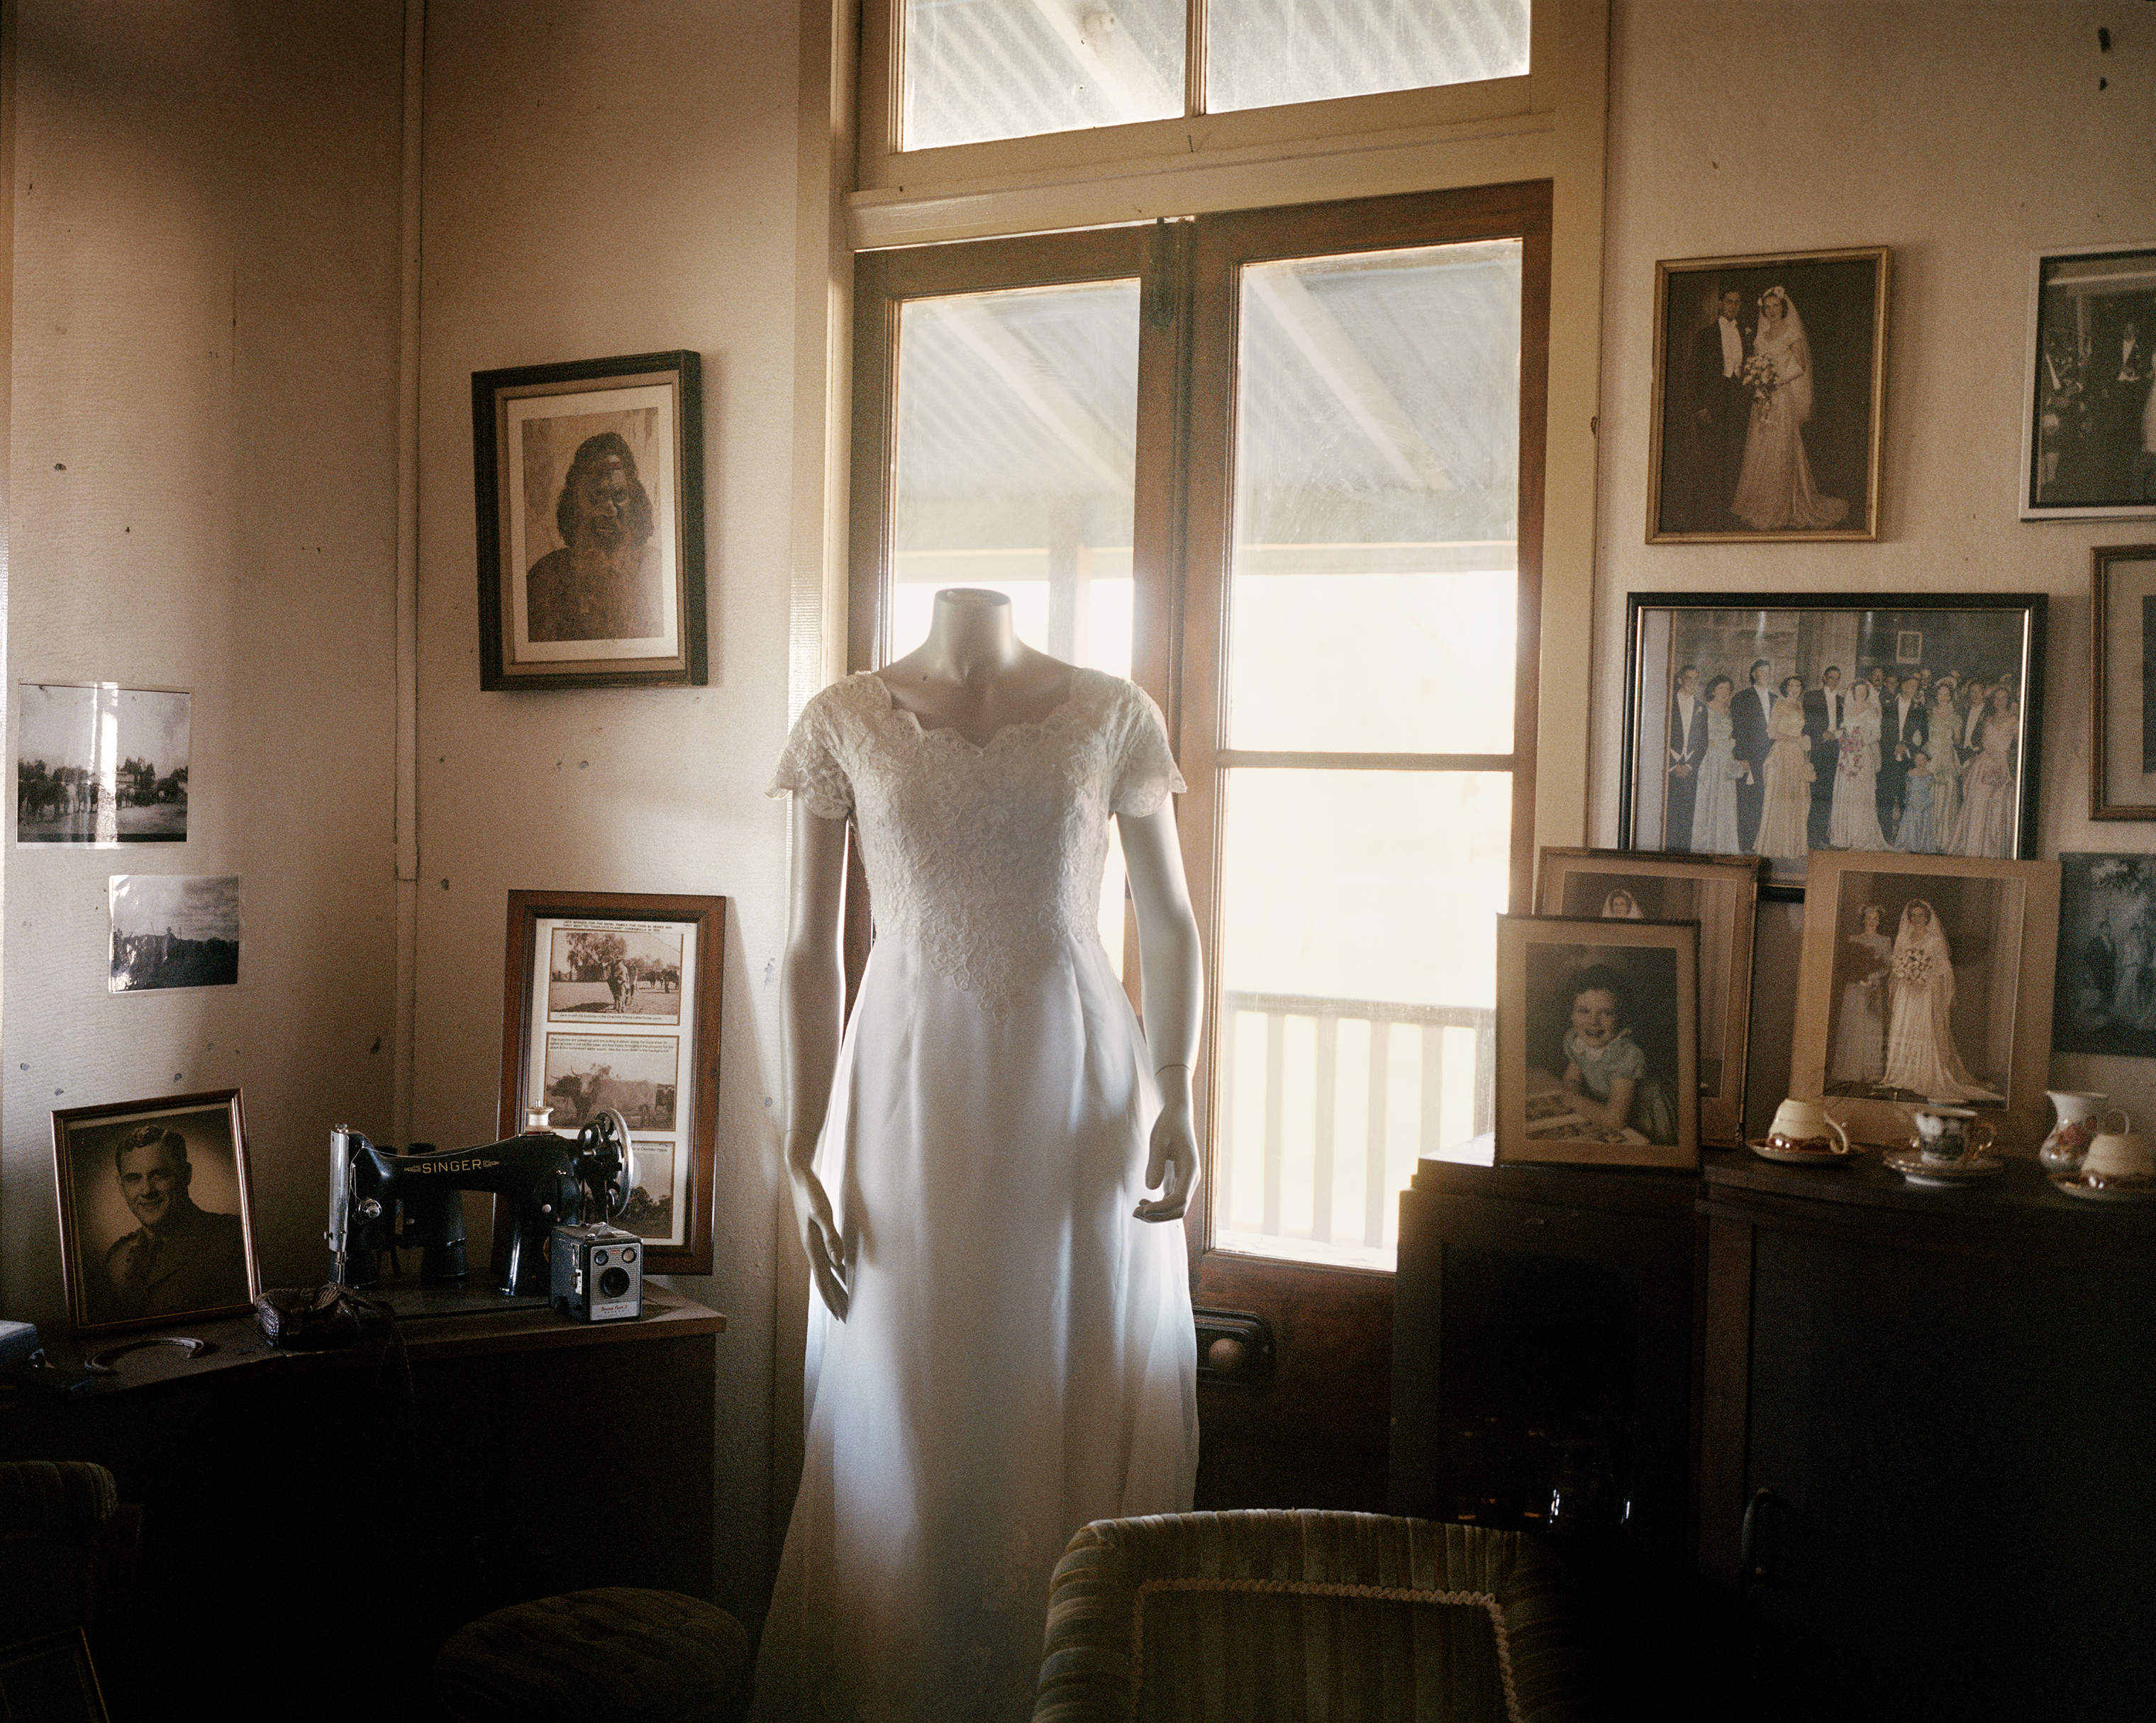 The wedding dress of Robyn Russell, 72, at her home on Charlotte Plains in Queensland in November. Russell lives and works her 69,000-acre property alone after her husband died of a brain tumor in 2011. Due to the drought, she describes herself  sliding into debt.  In 2001 she had 8,000 sheep but she has since destocked to a current 3,800. To supplement her farm income, she has established a tourism business on her property with historical tours and farm stays.